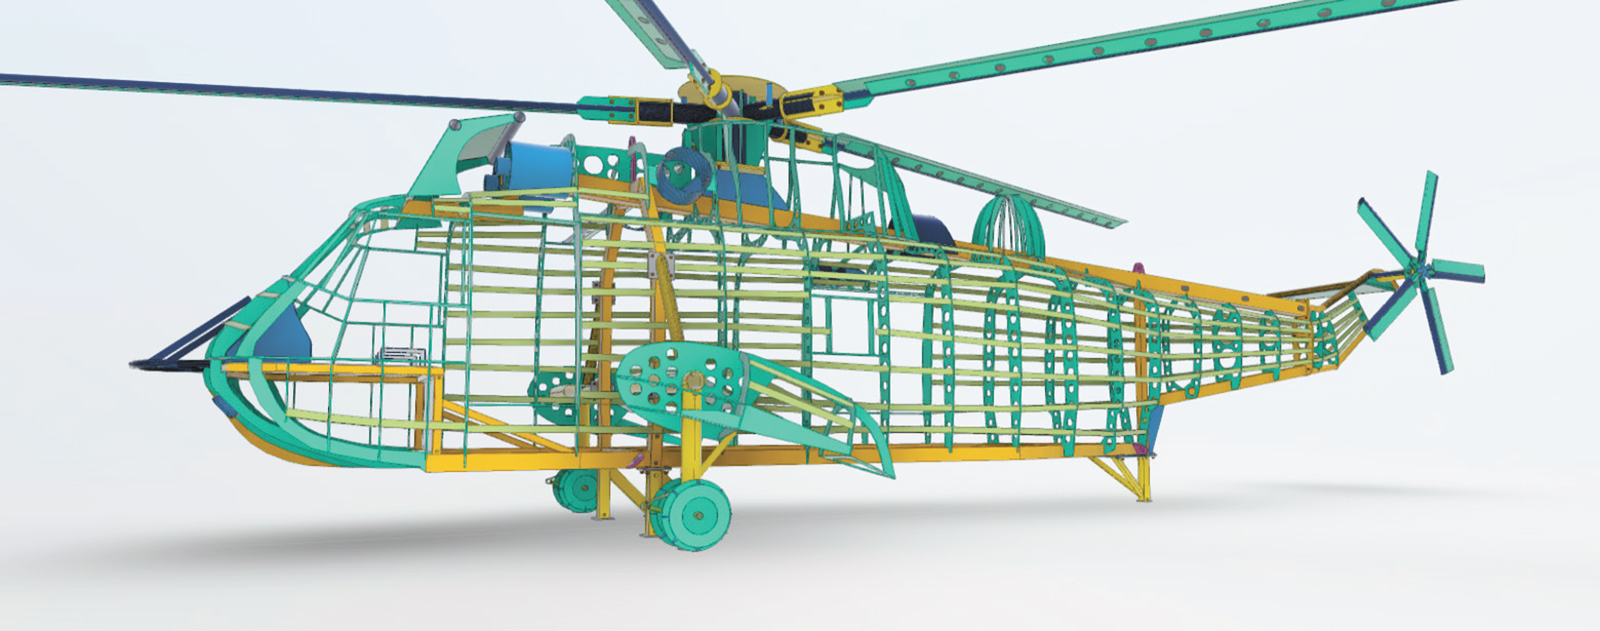 Concept drawing of the full scale replica airframe of the Sea King helicopter created by Apex Structural Design, of Red Deer, Alberta.